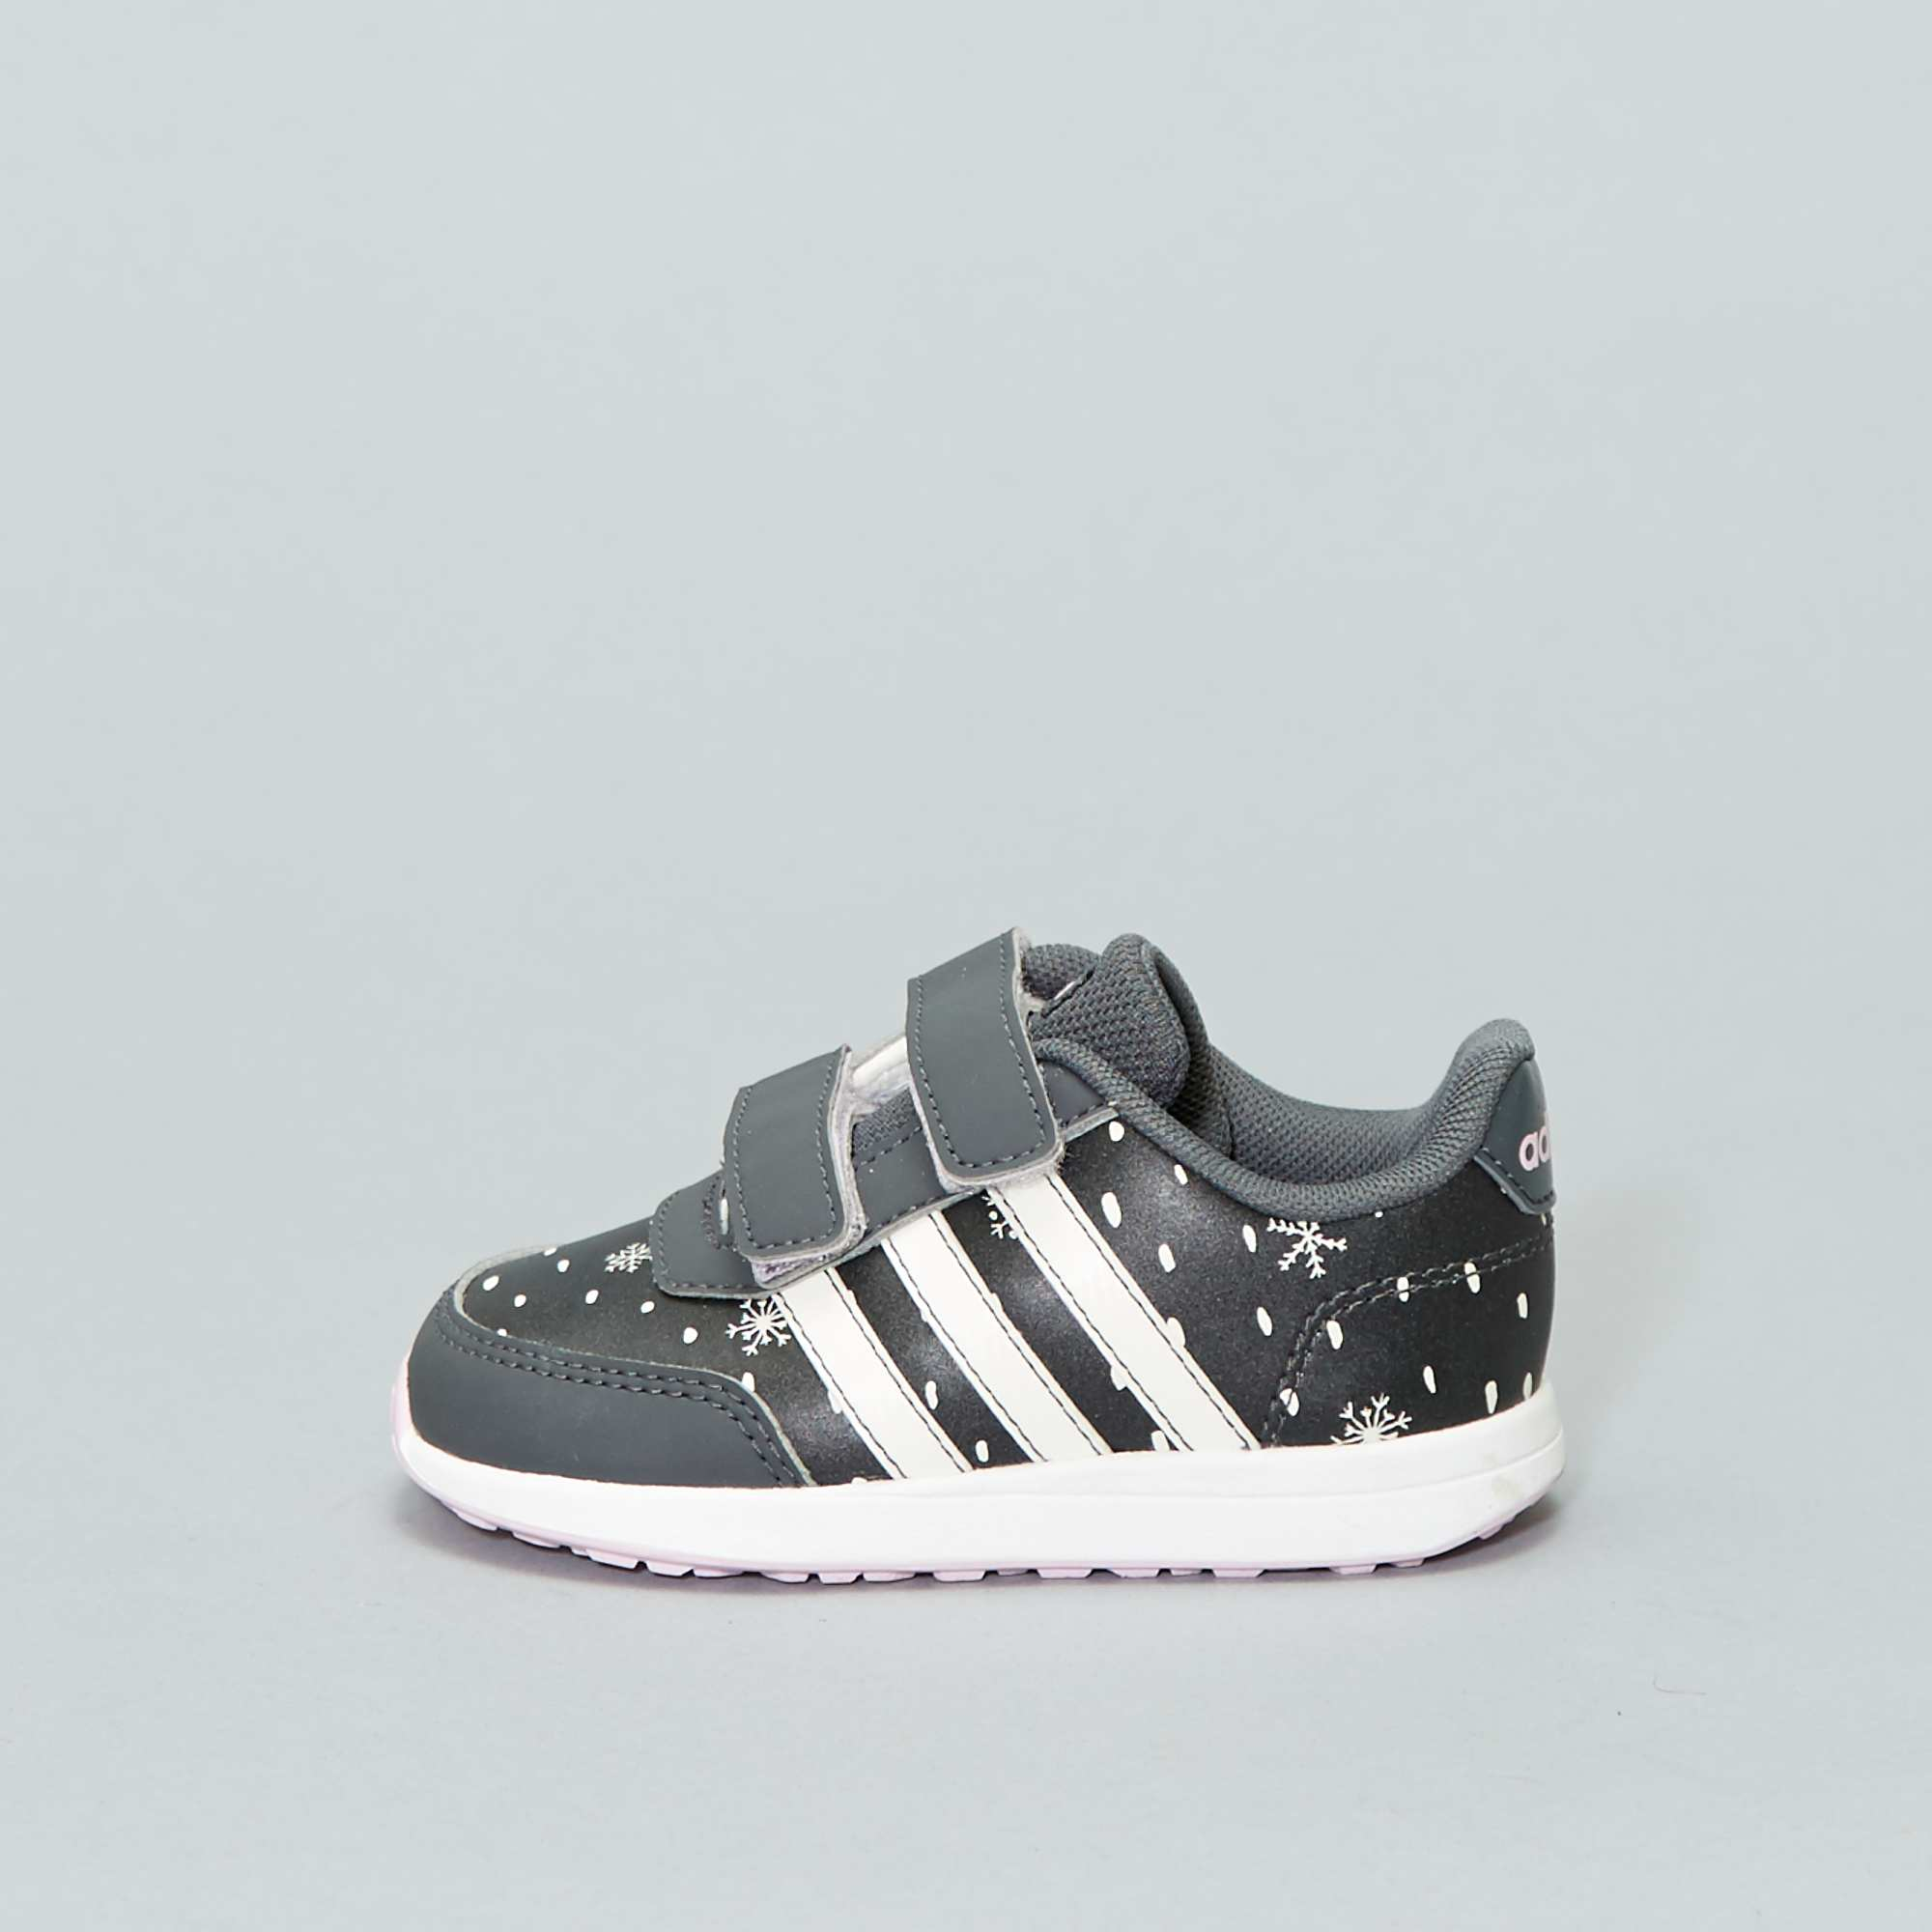 f9a6cd62675 Zapatillas deportivas bajas  Adidas   VS Switch 2  GRIS Zapatos. Loading  zoom